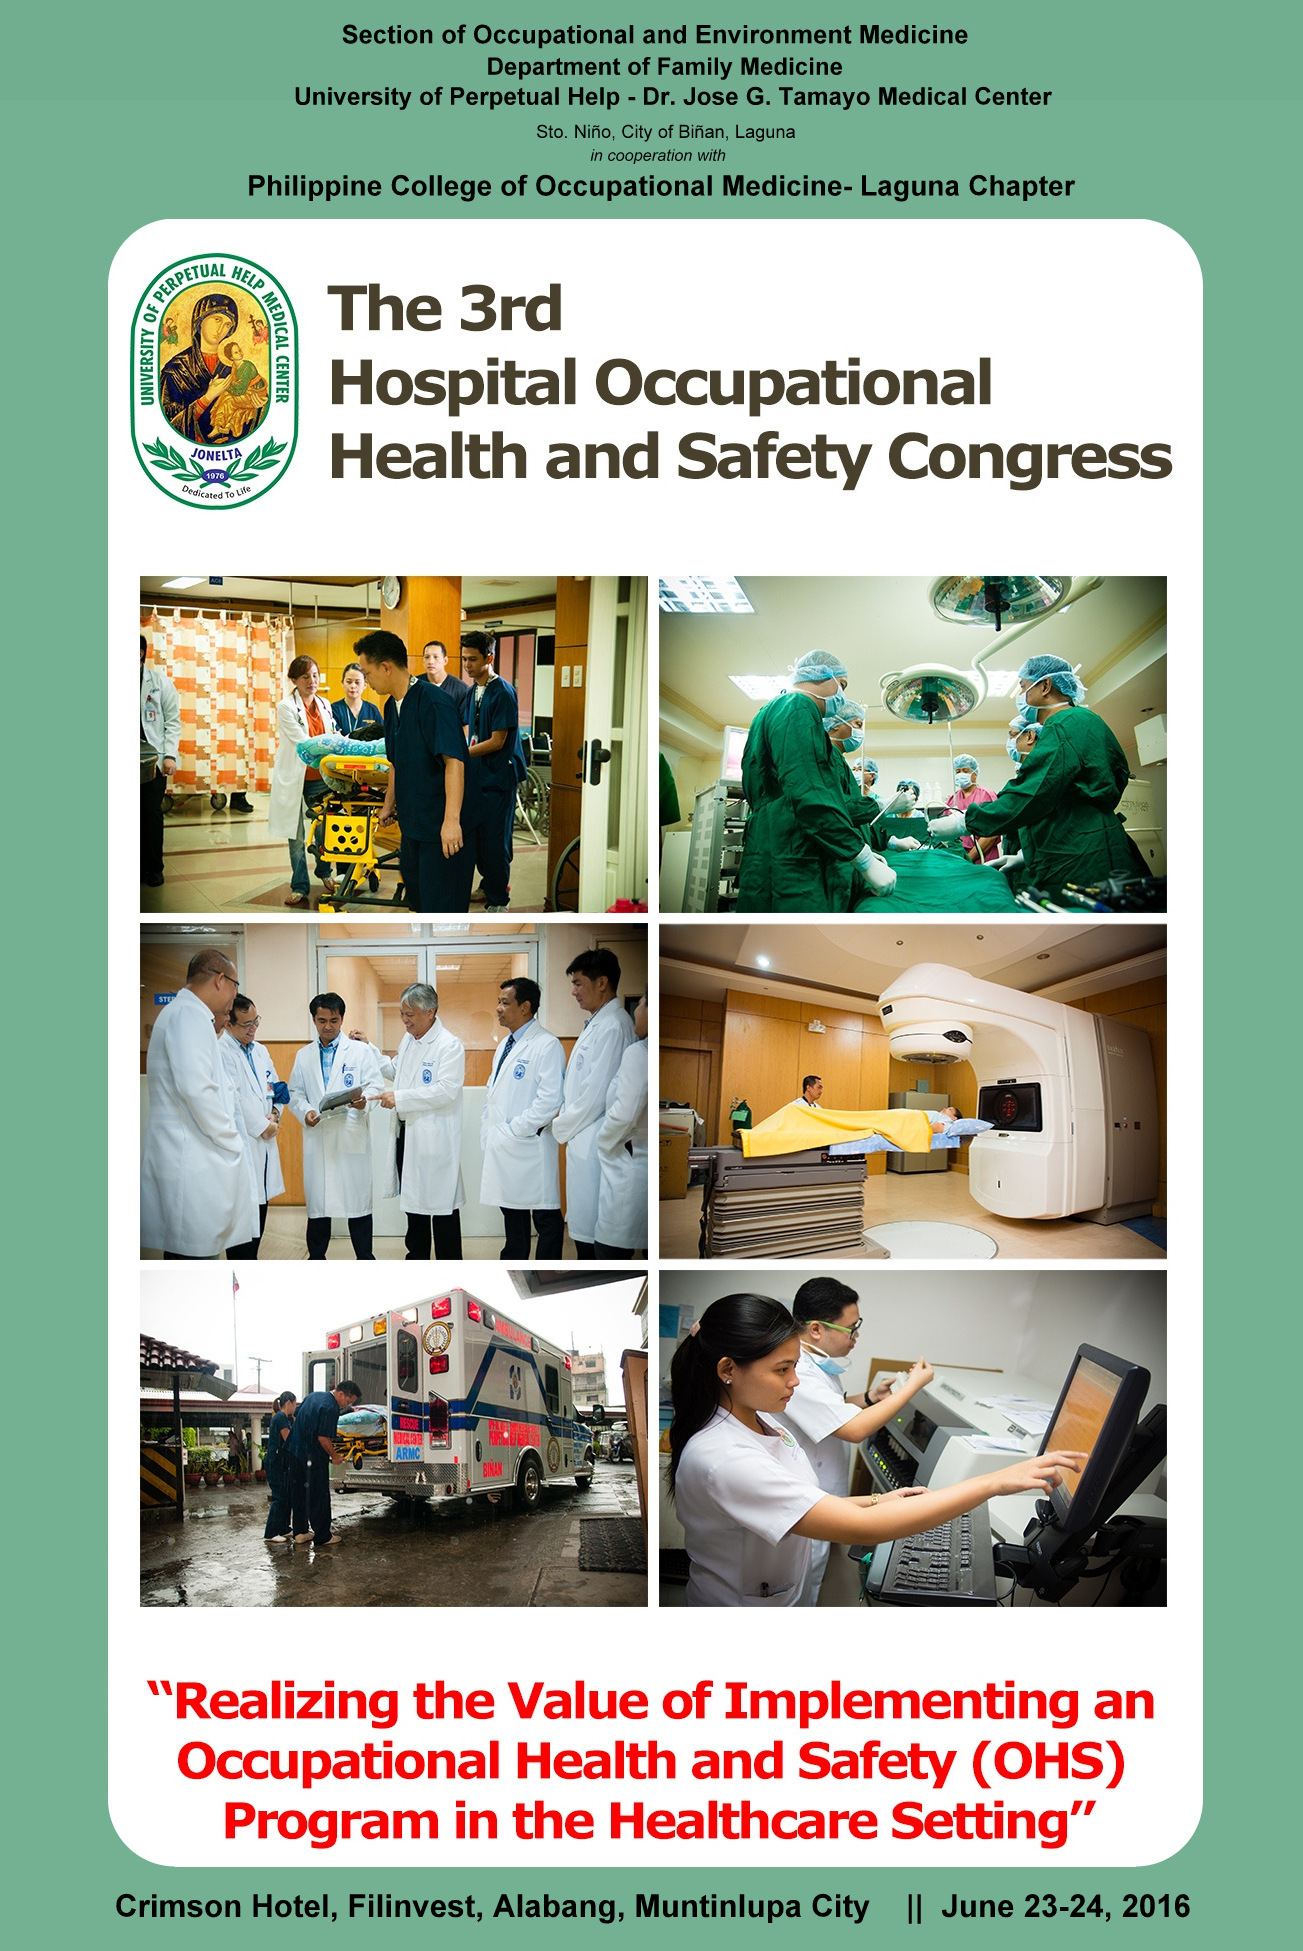 The 3rd Hospital Occupational Health and Safety Congress